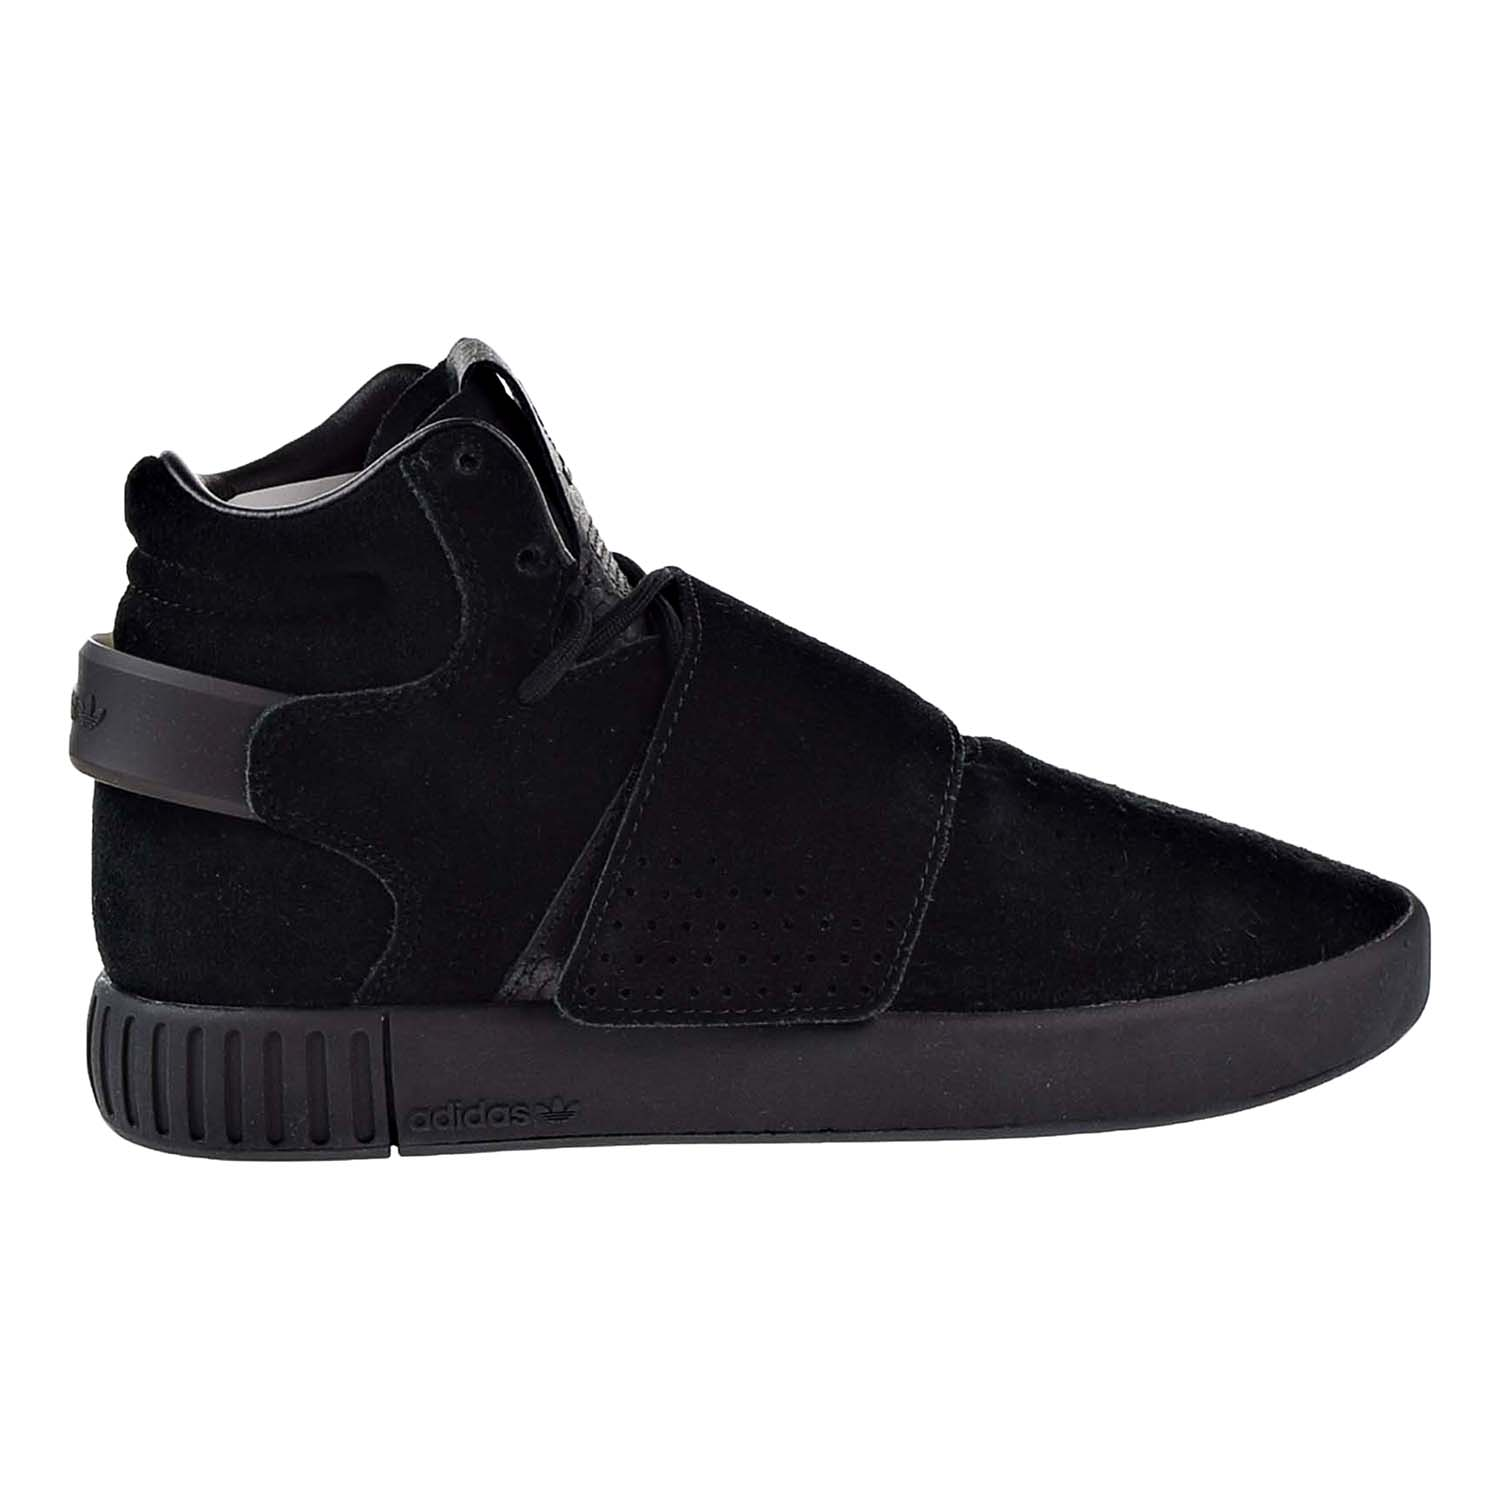 New Adidas Junior Boys Infant Tubular Invader Strap Trainers Various Sizes